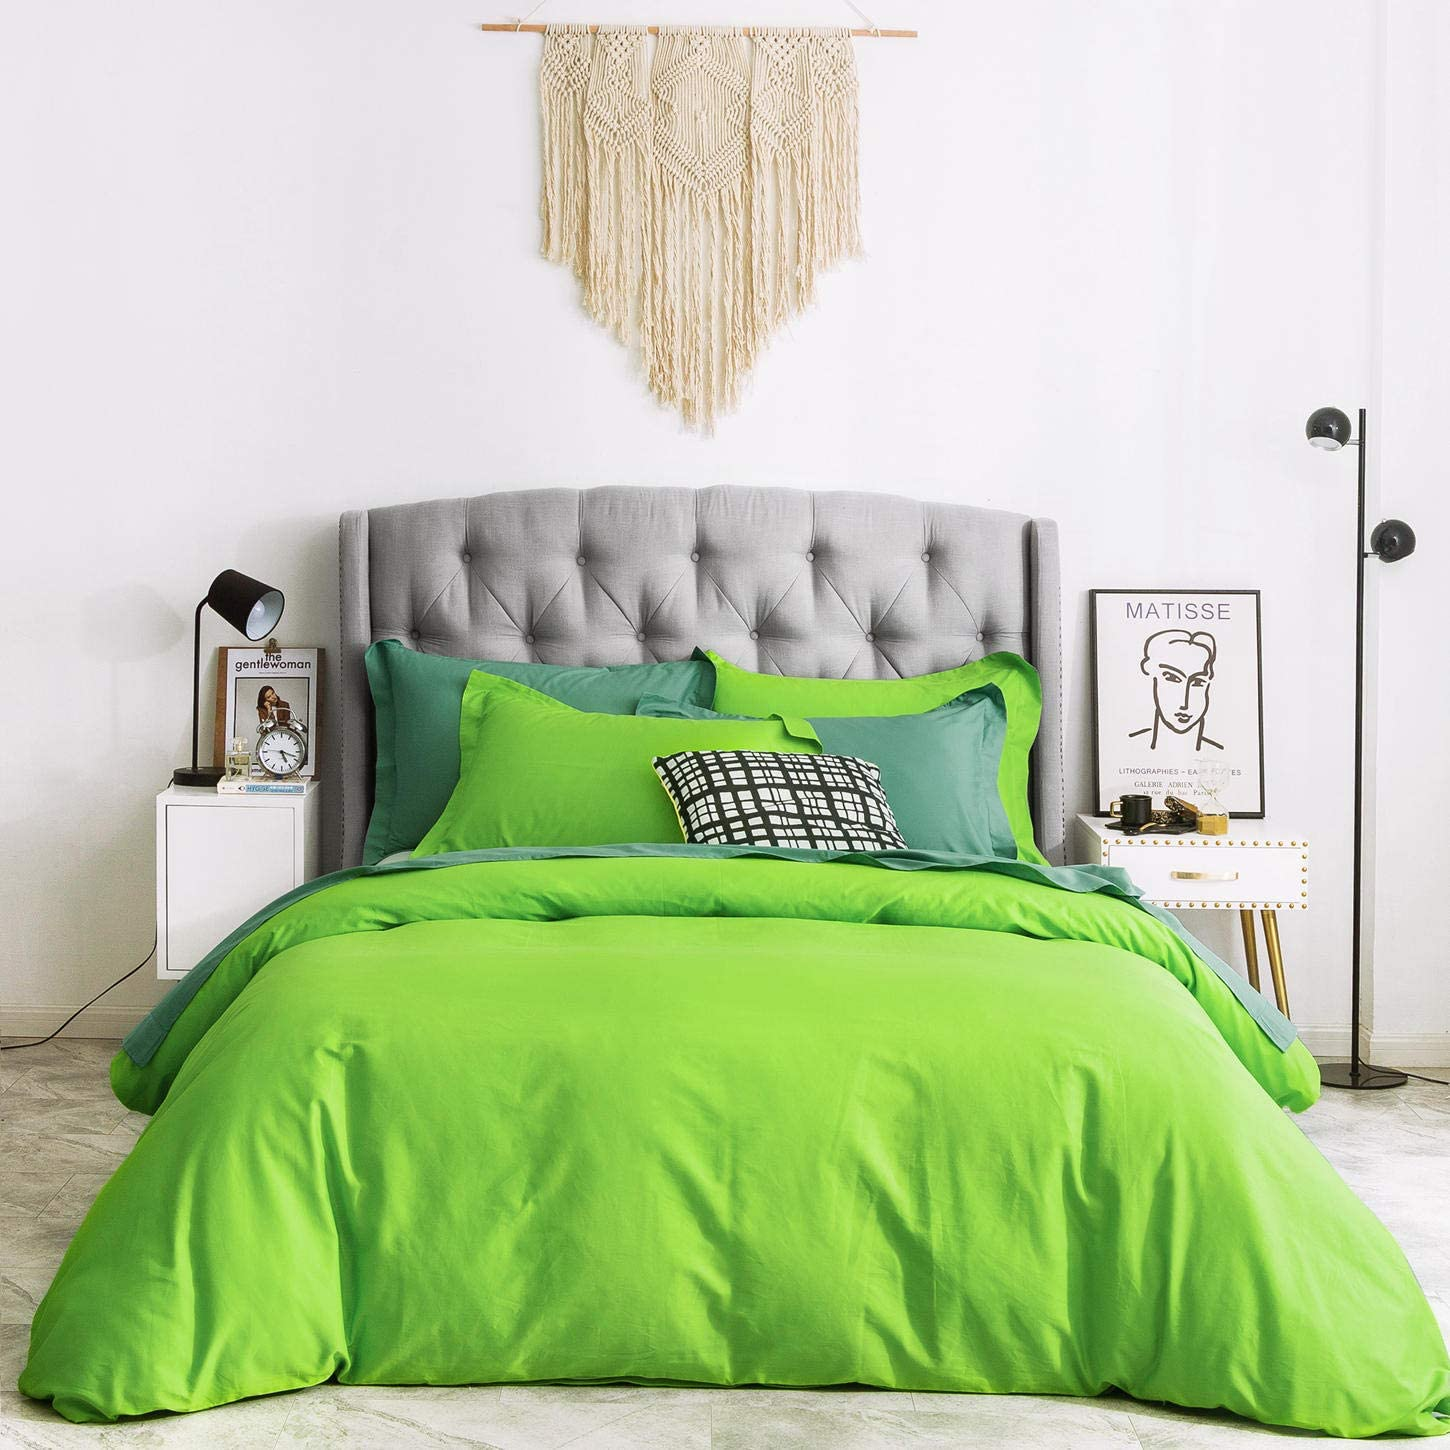 SUSYBAO 3 Pieces Duvet Cover Set 100% Natural Cotton Queen Size 1 Duvet Cover 2 Pillow Shams Light Green Luxury Quality Ultra Soft Breathable Lightweight Fade Resistant Solid Bedding with Zipper Ties